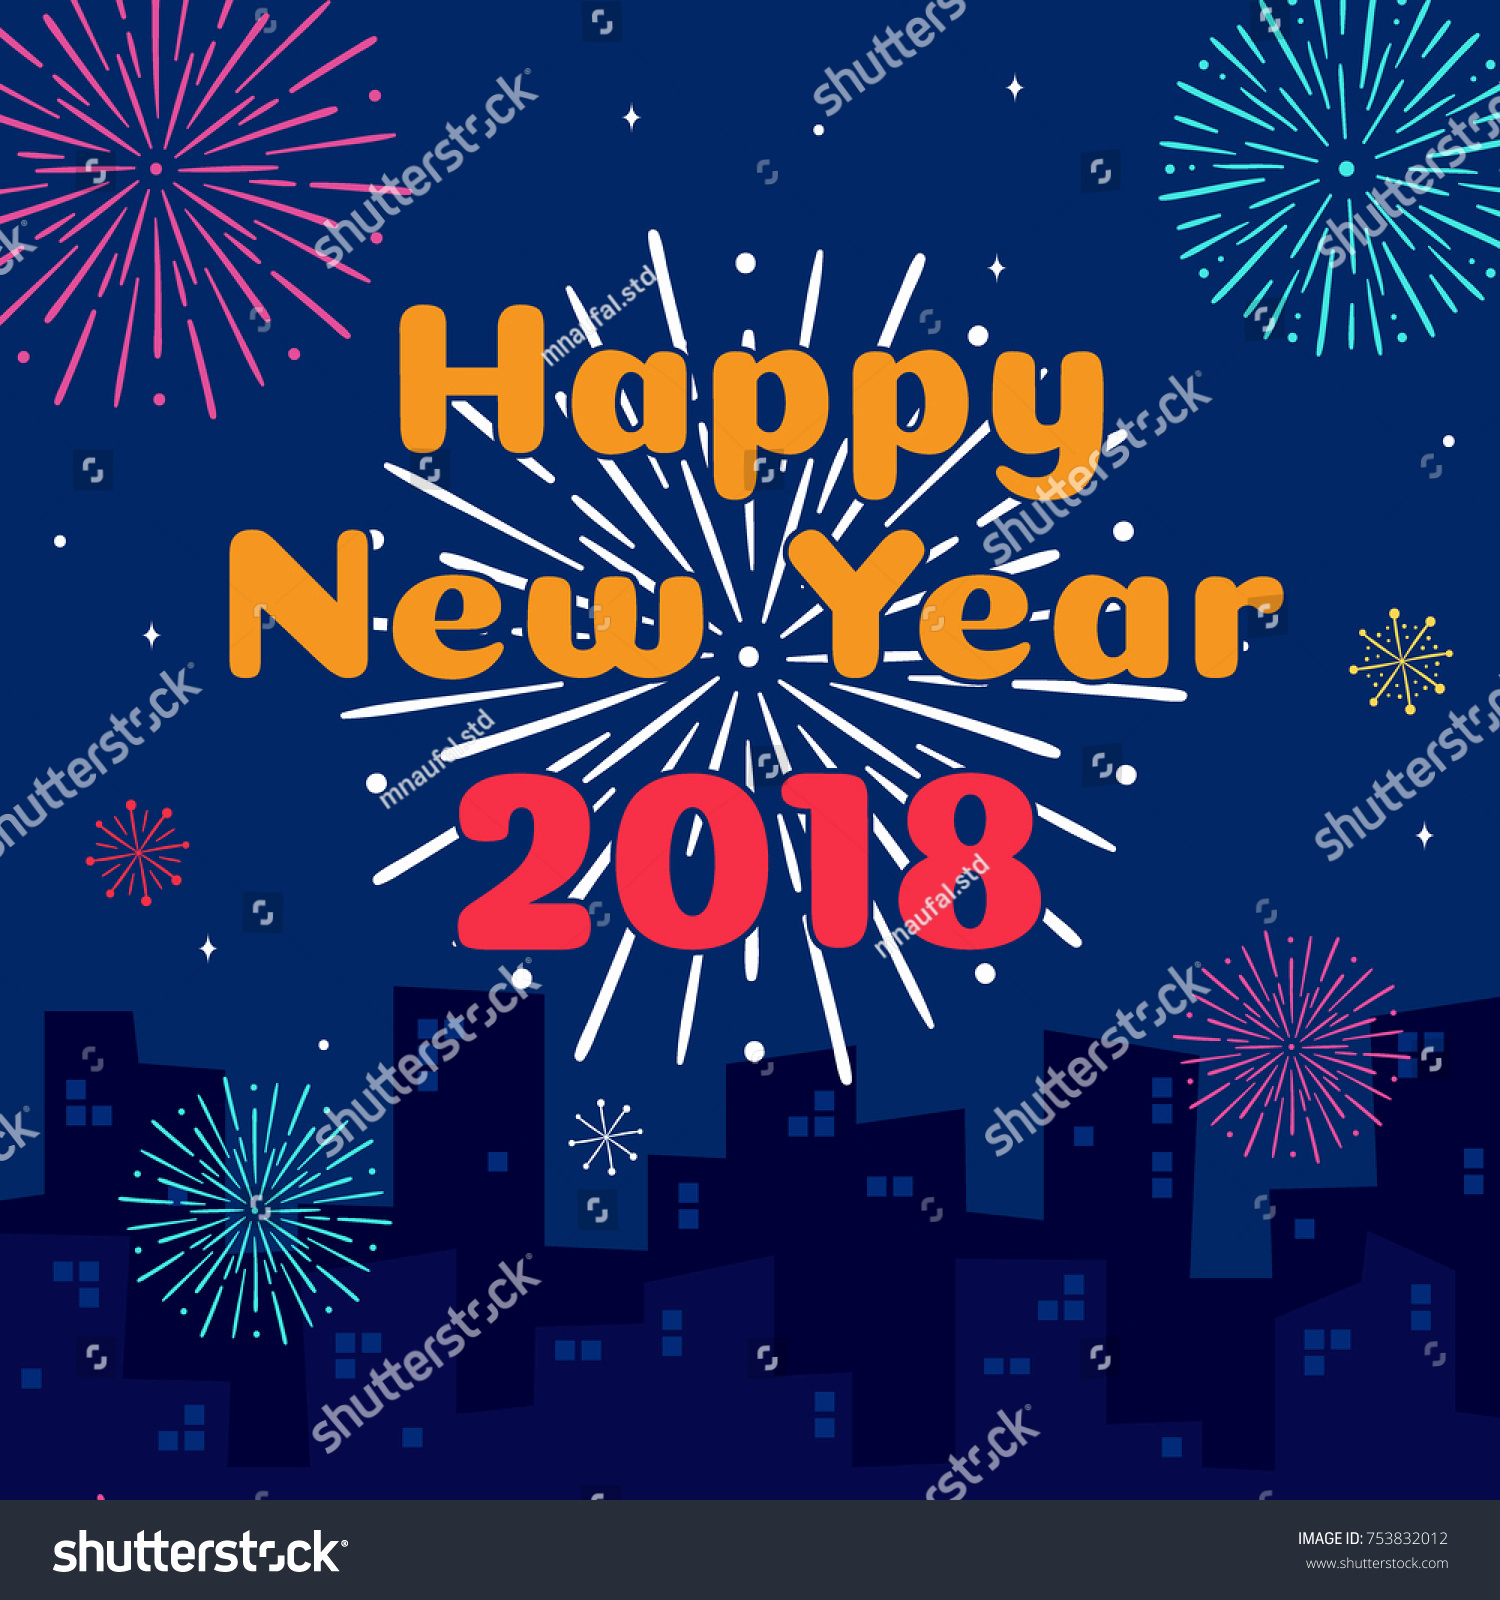 New Year Card Template Beautiful Happy New Year 2018 Card Template Stock Vector